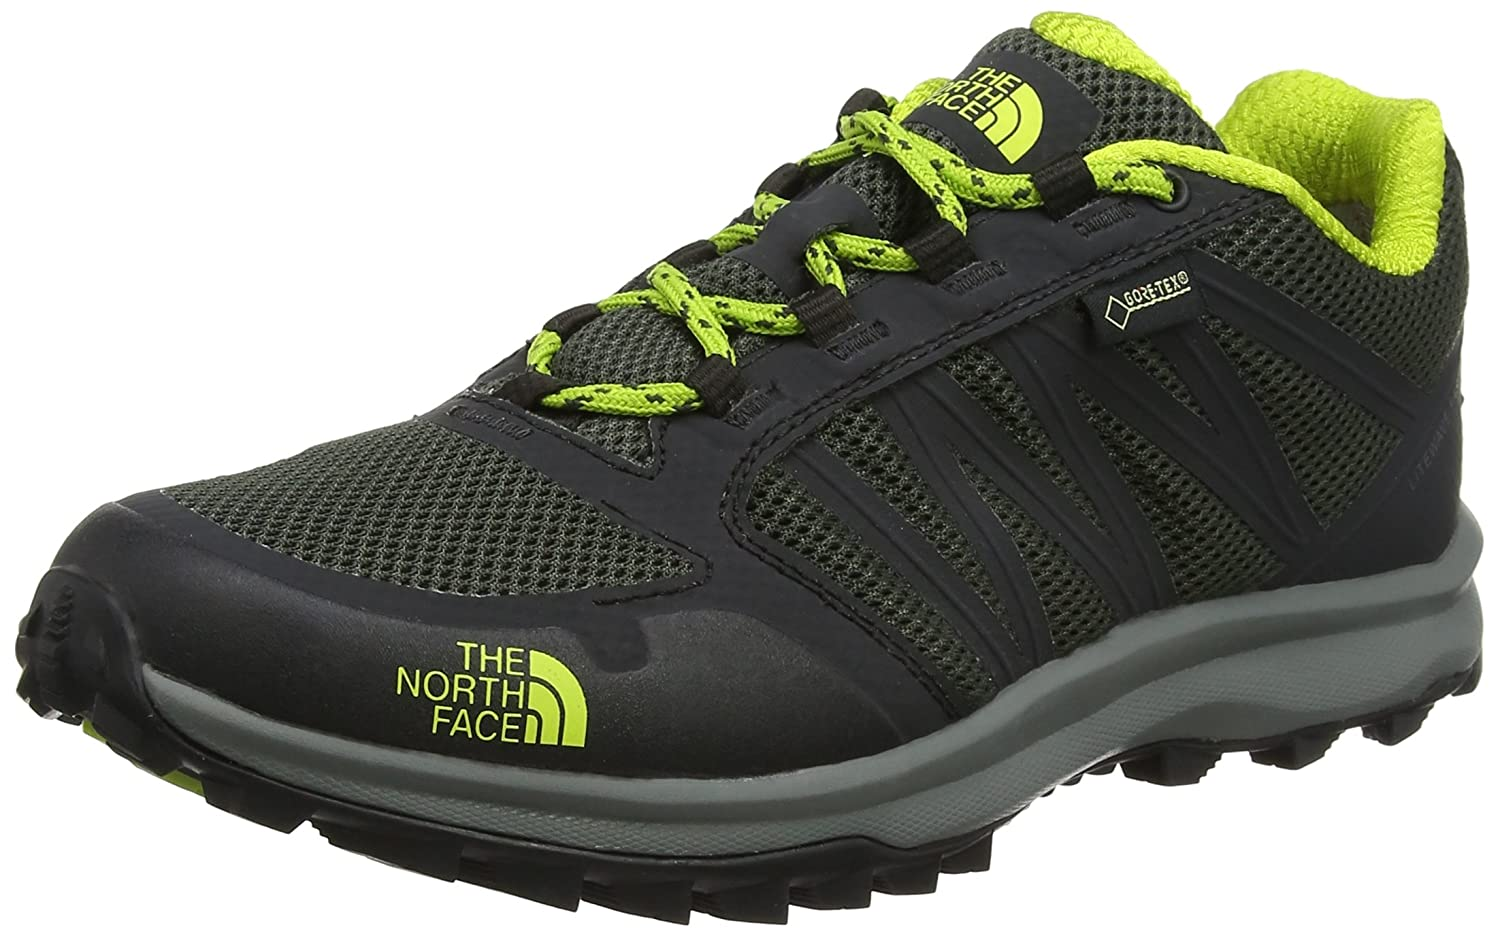 The North Face Litewave Fastpack Gore-Tex, Zapatillas de Senderismo para Hombre